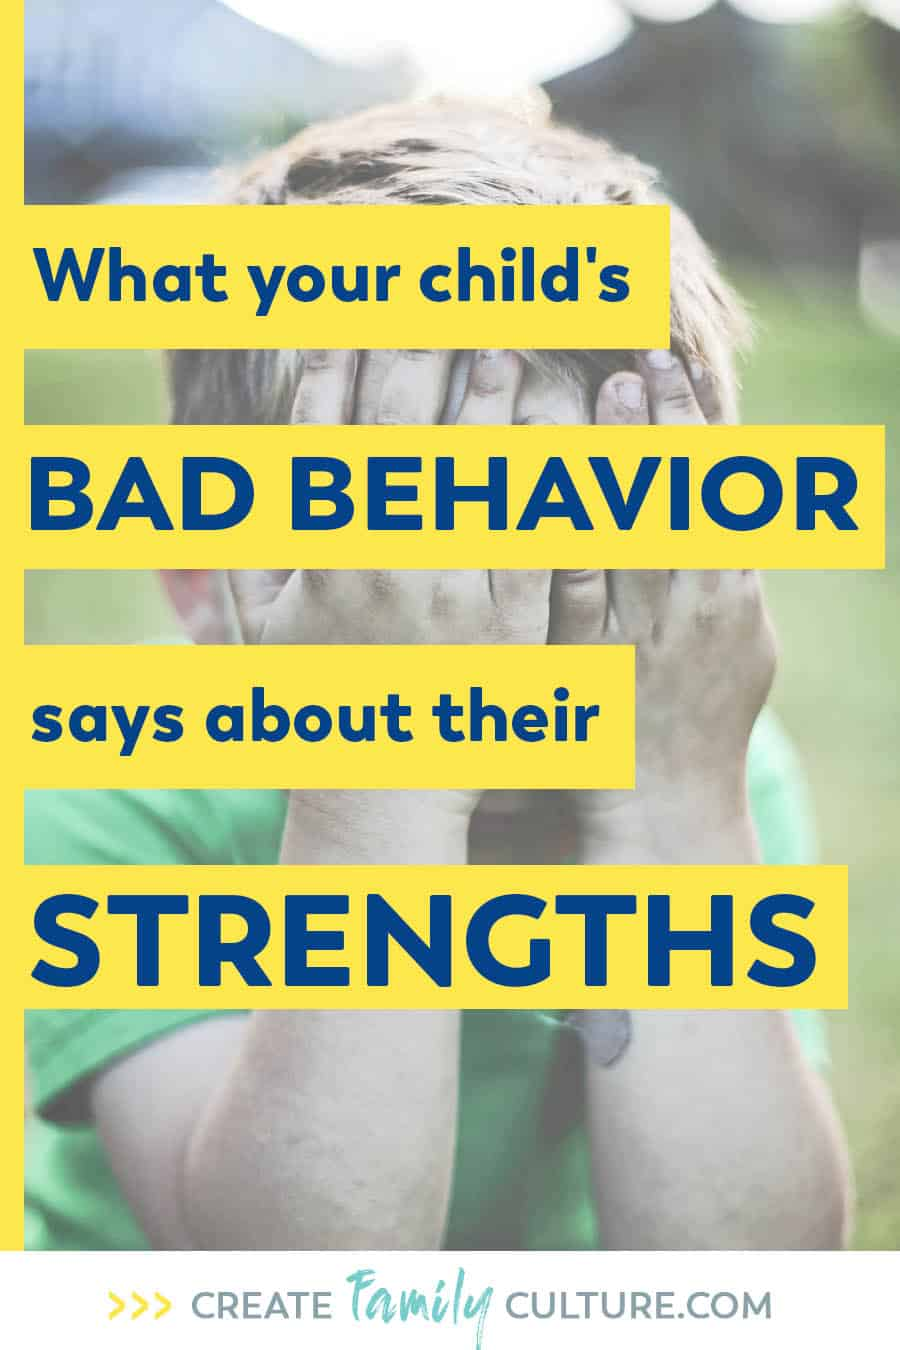 What your child's bad behavior says about their strengths. How to Use Your Kids' Bad Behavior to Bring Out Their Strengths | Parenting Tips on Discipline | Intentional Parenting #parentingtips #discipline